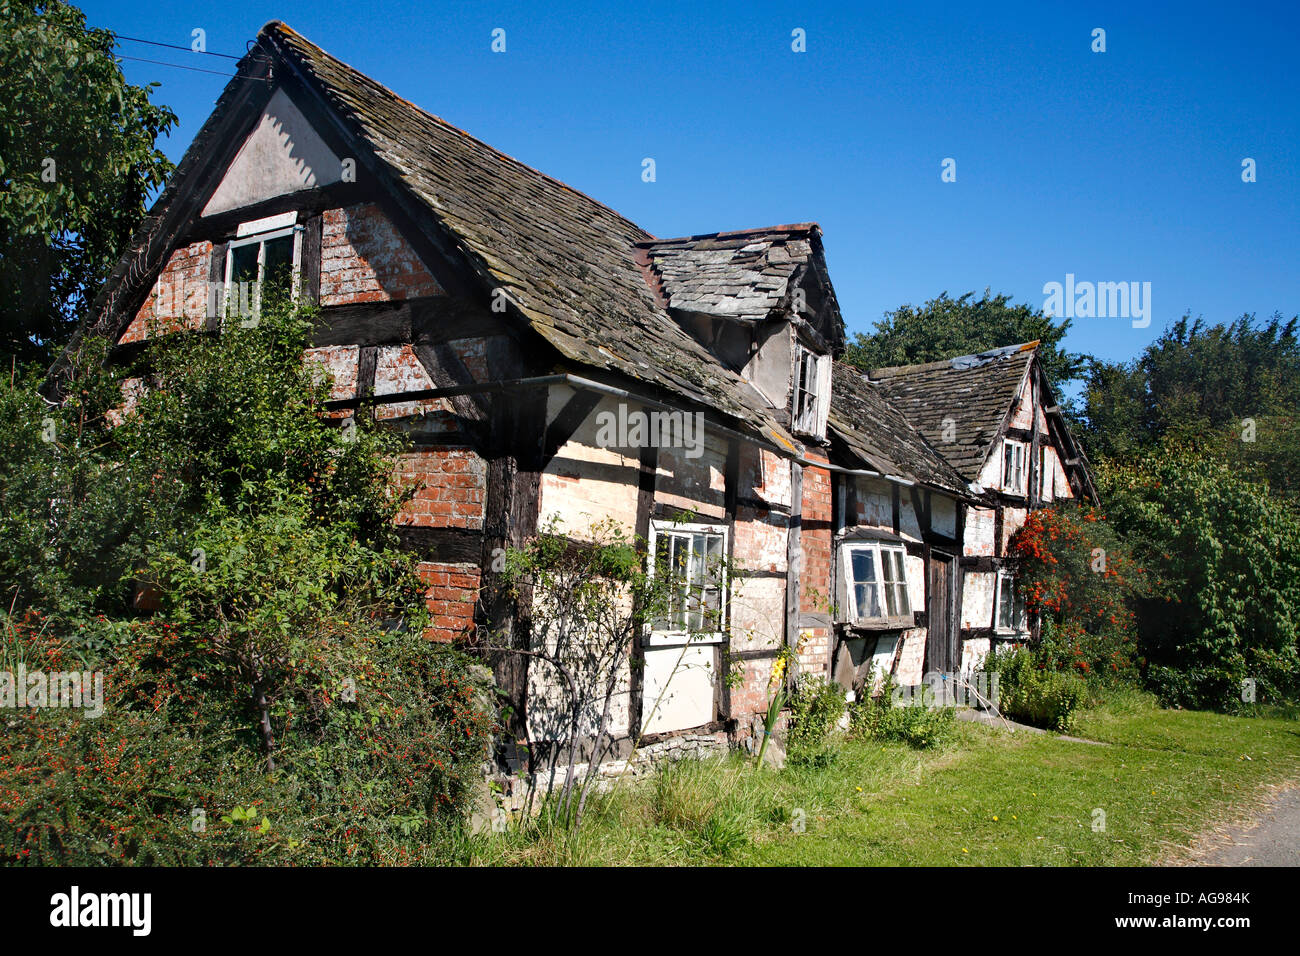 An old English decaying cottage disrepair in Willersley, Herefordshire, England UK - Stock Image